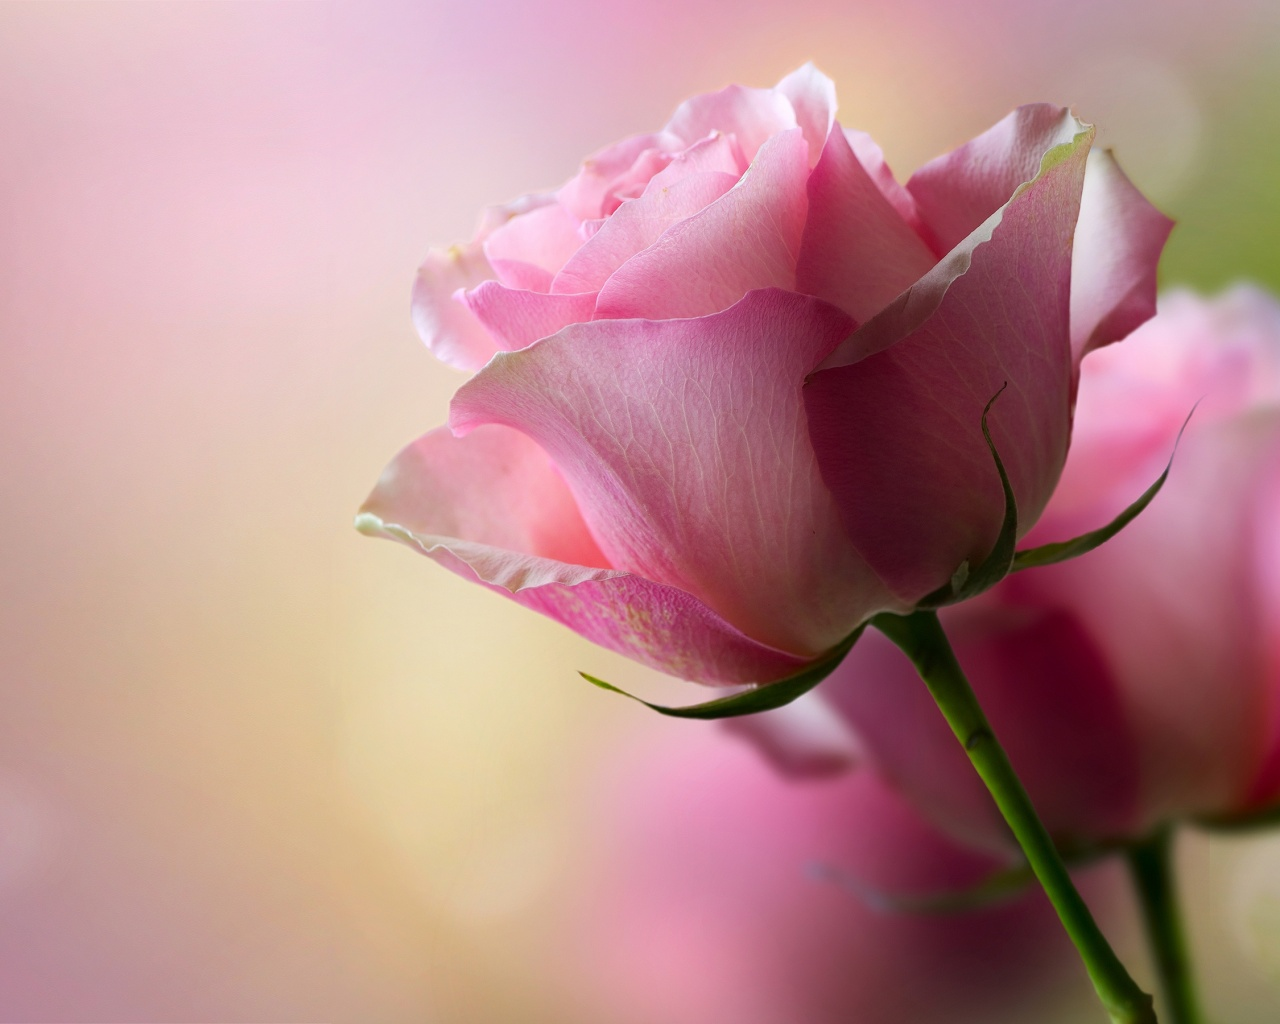 Pink Rose Wallpaper 11012 Hd Wallpapers in Flowers   Imagescicom 1280x1024